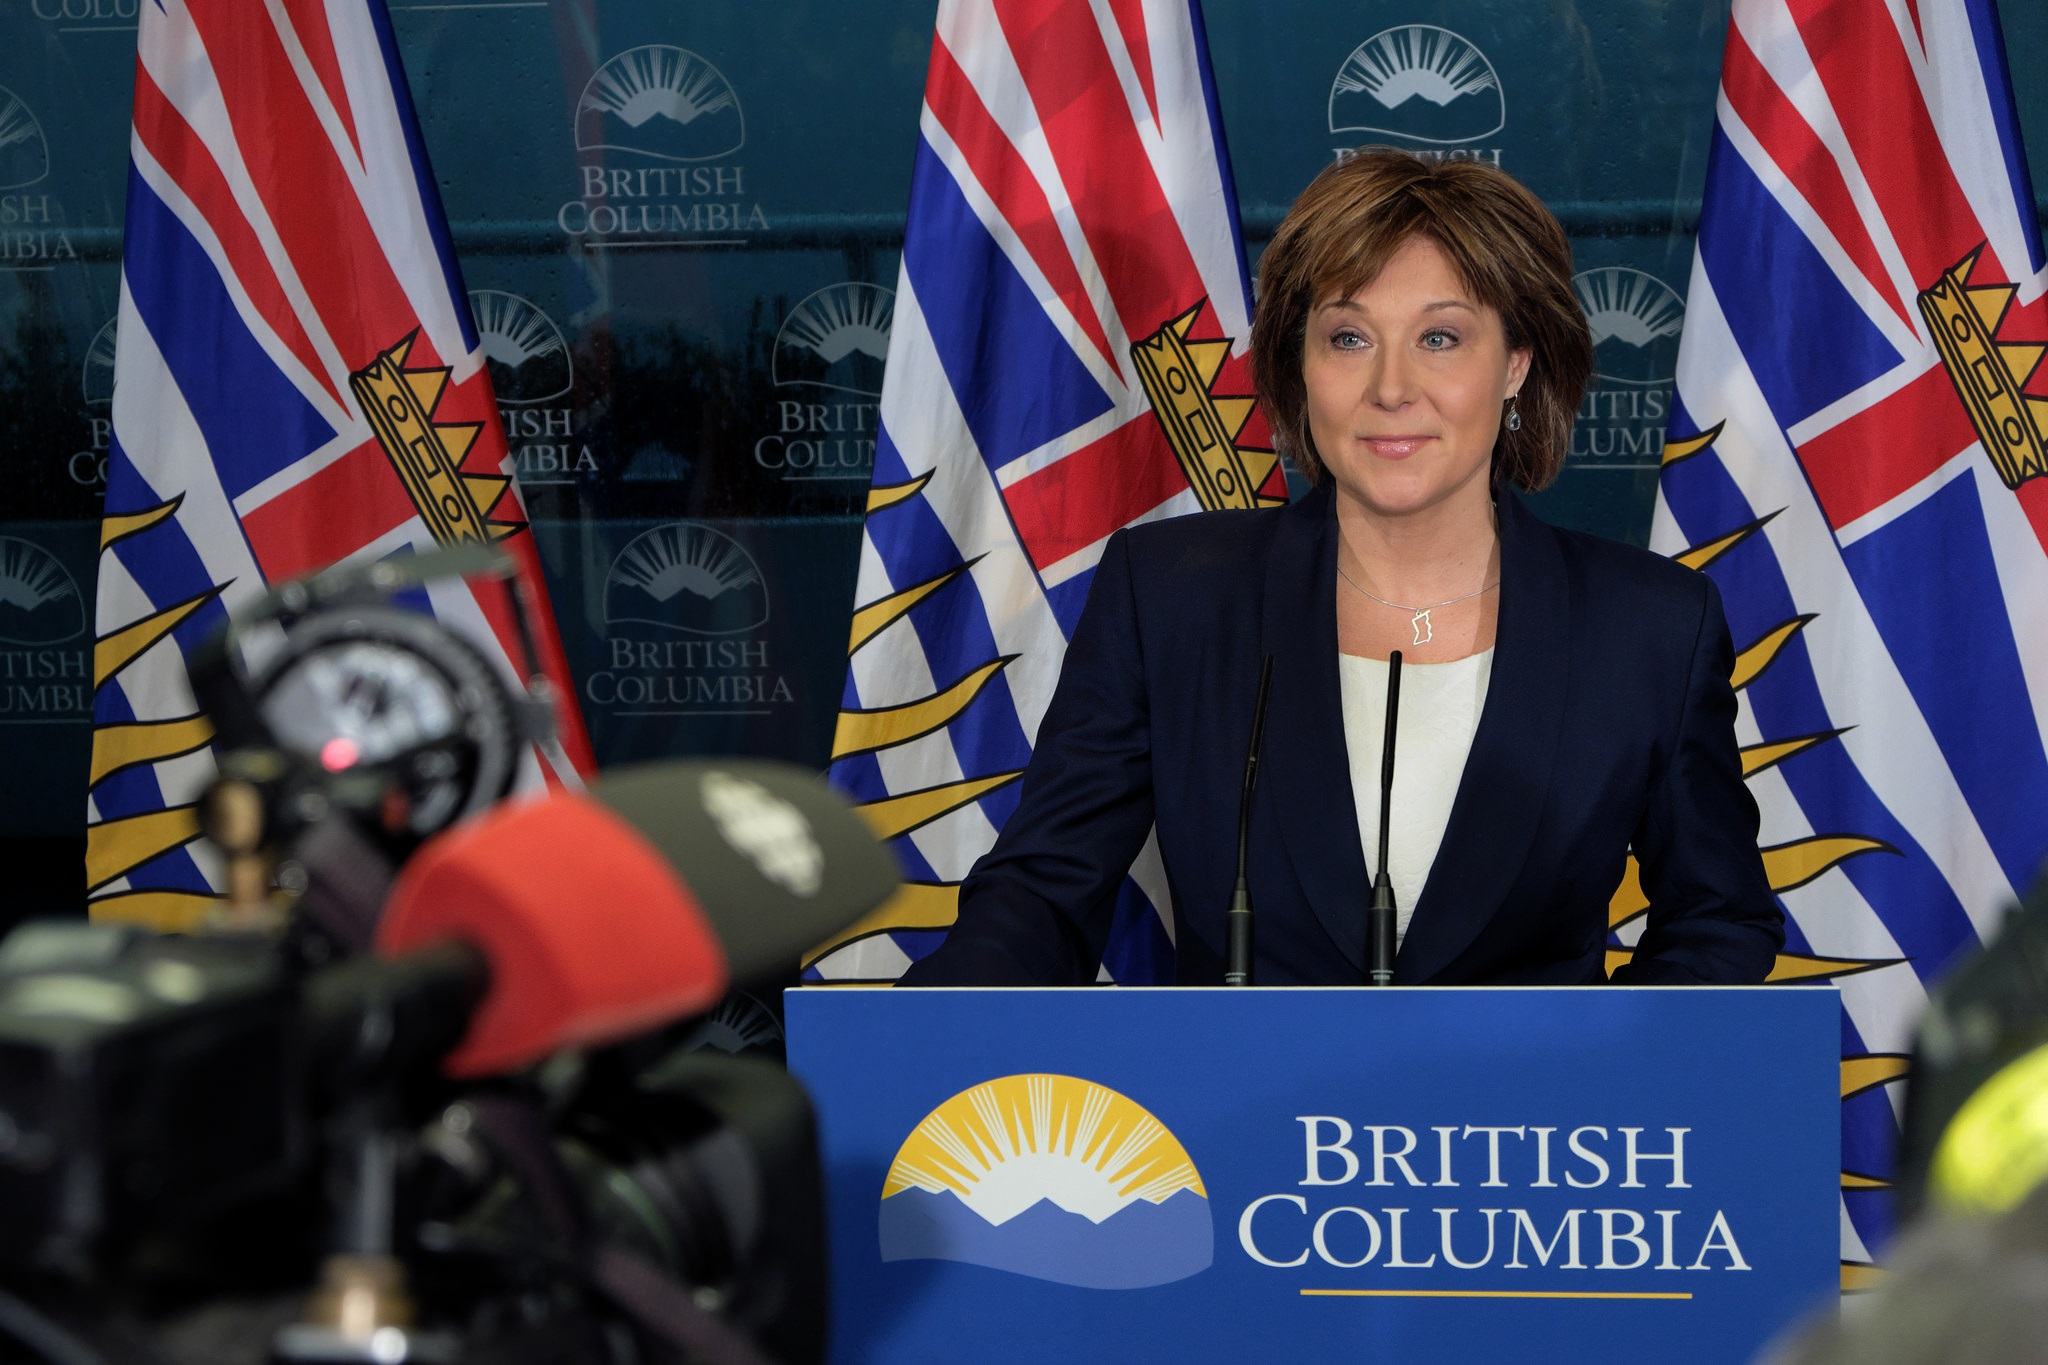 Christy-Clark-Scrum.jpg